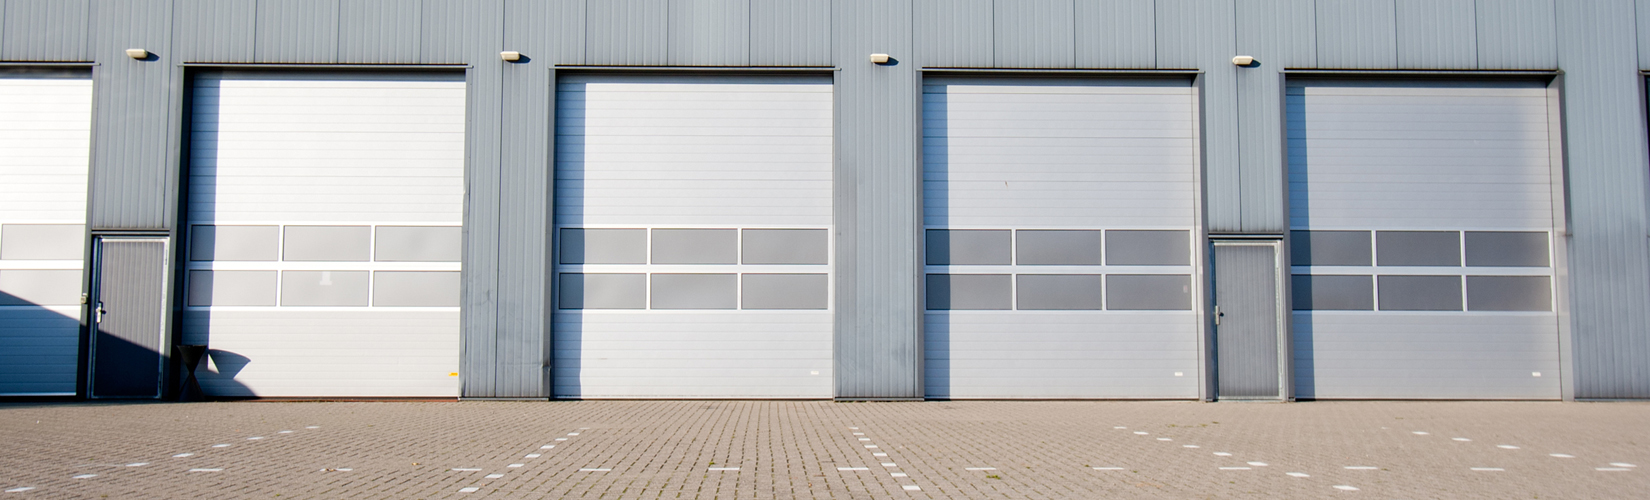 grey business building with four garage doors